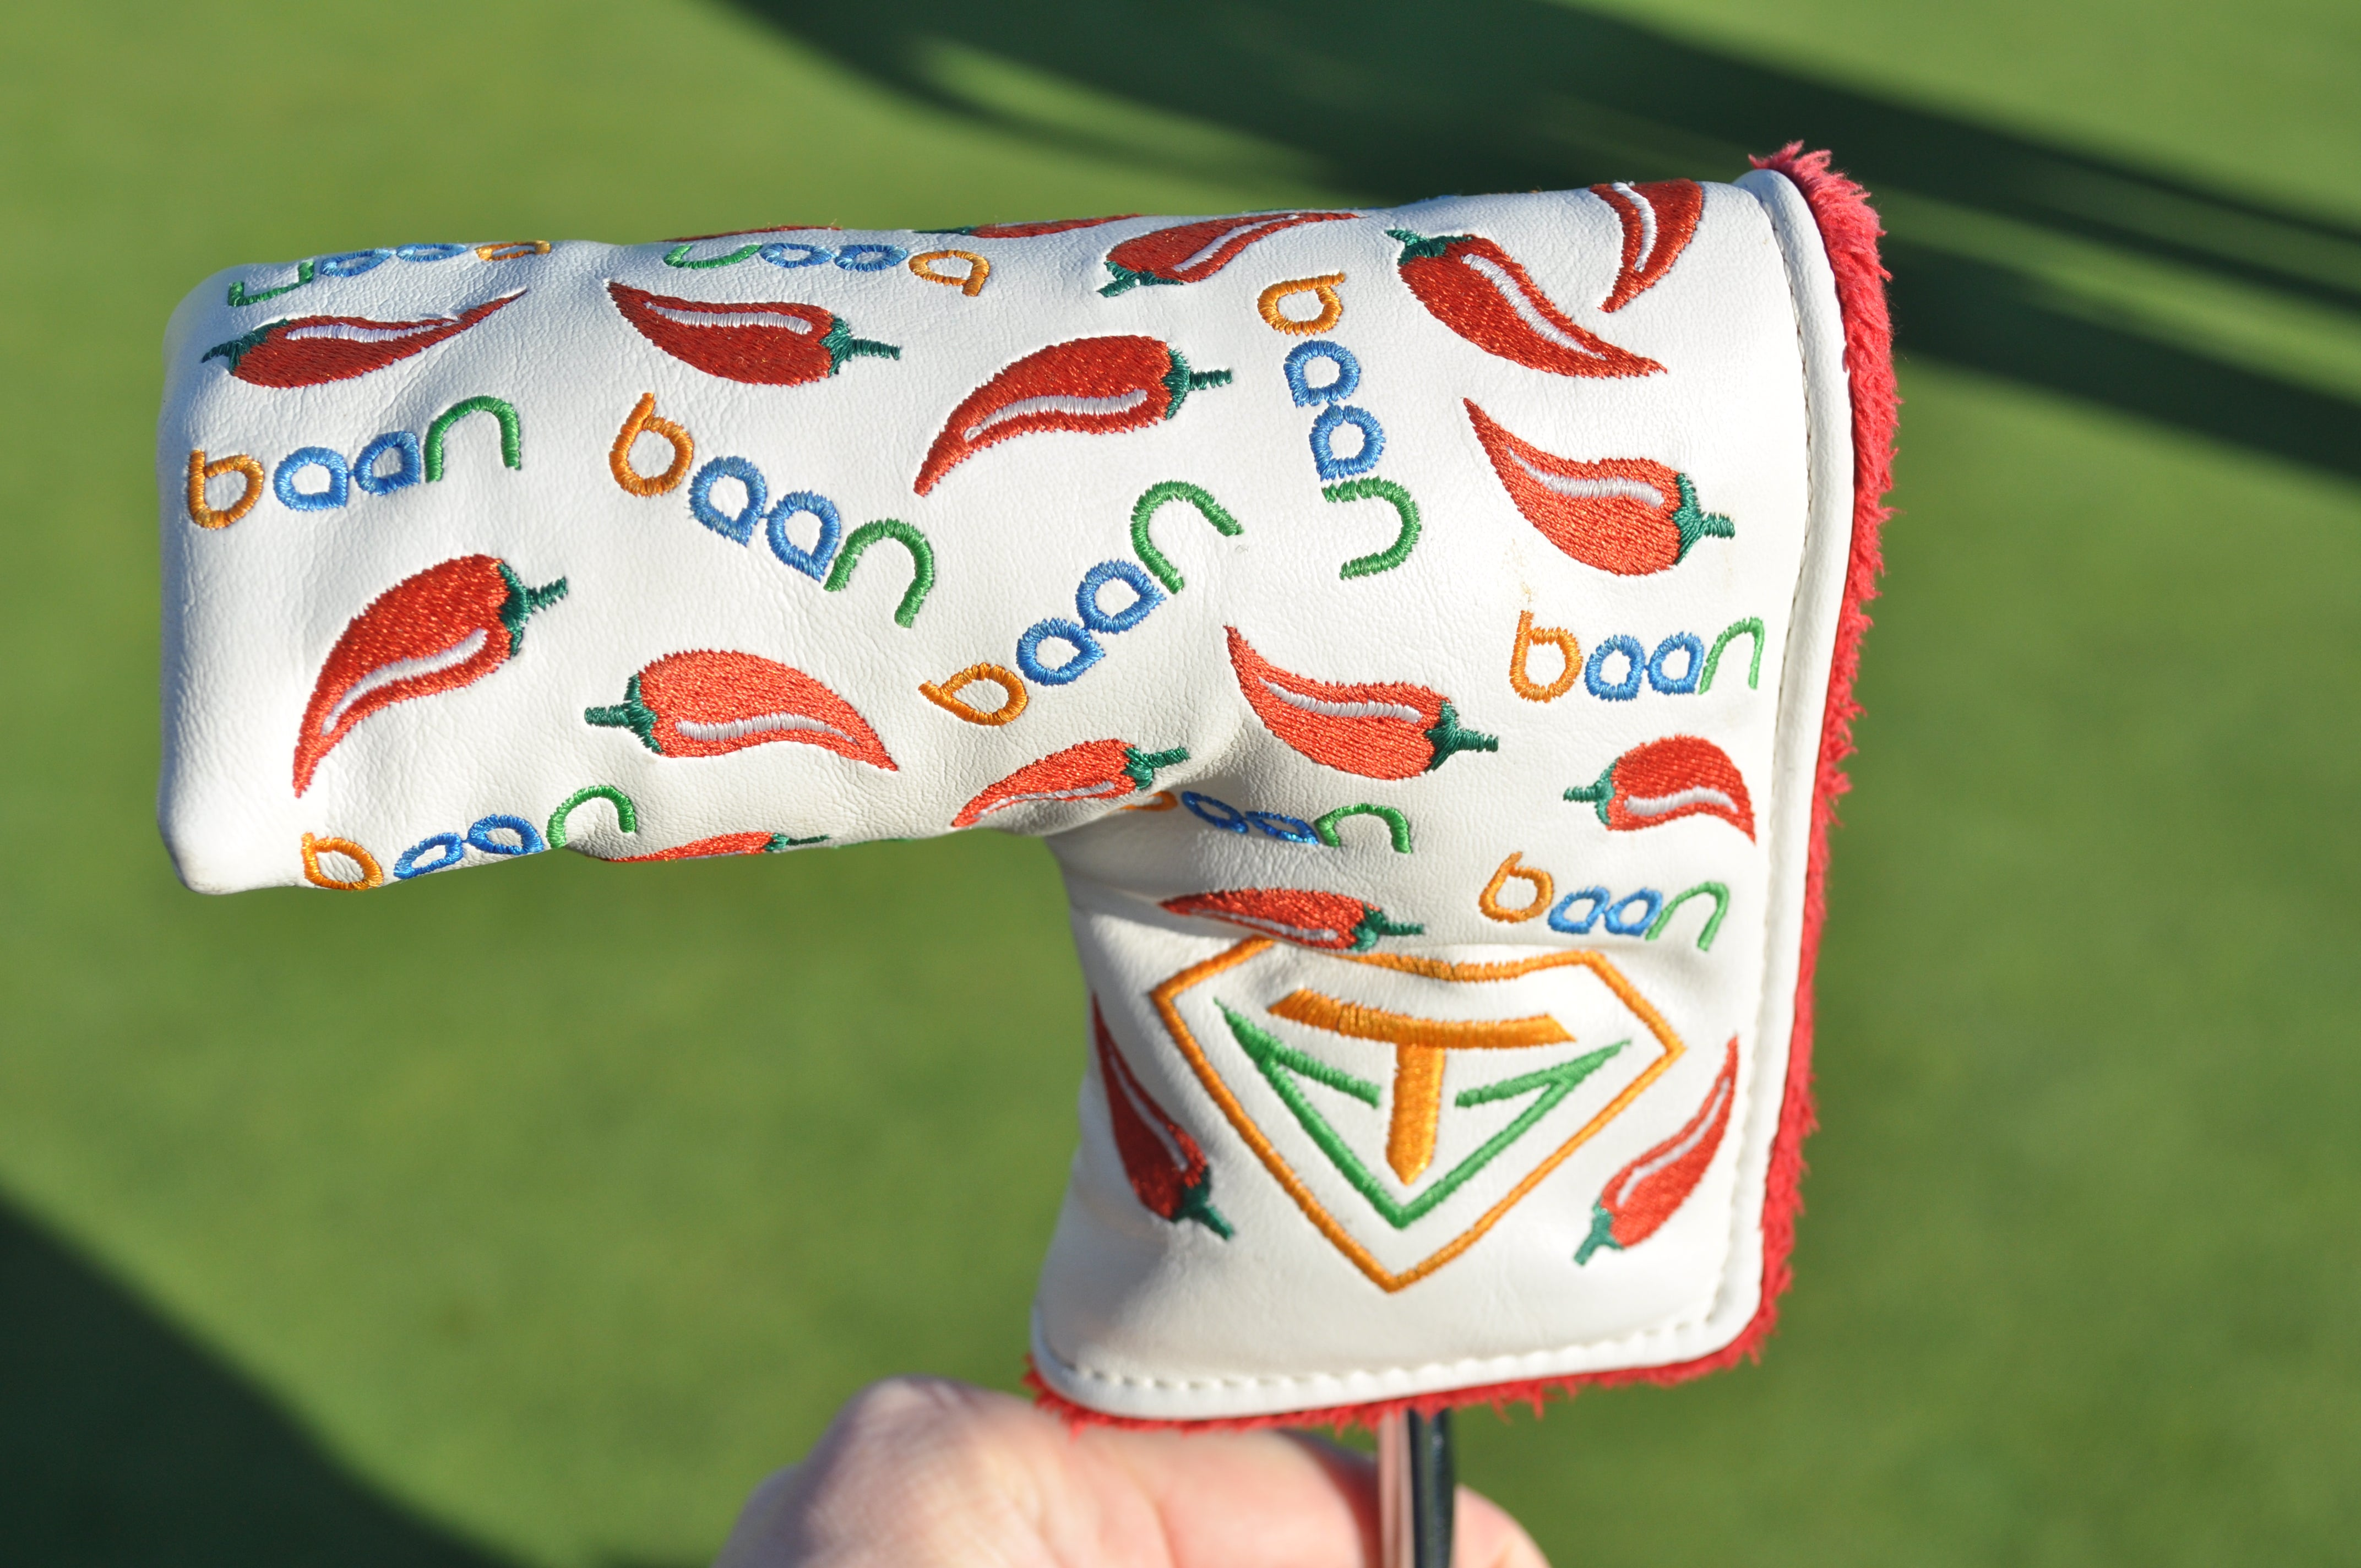 Anirban Lahiri's Chili pepper headcover.